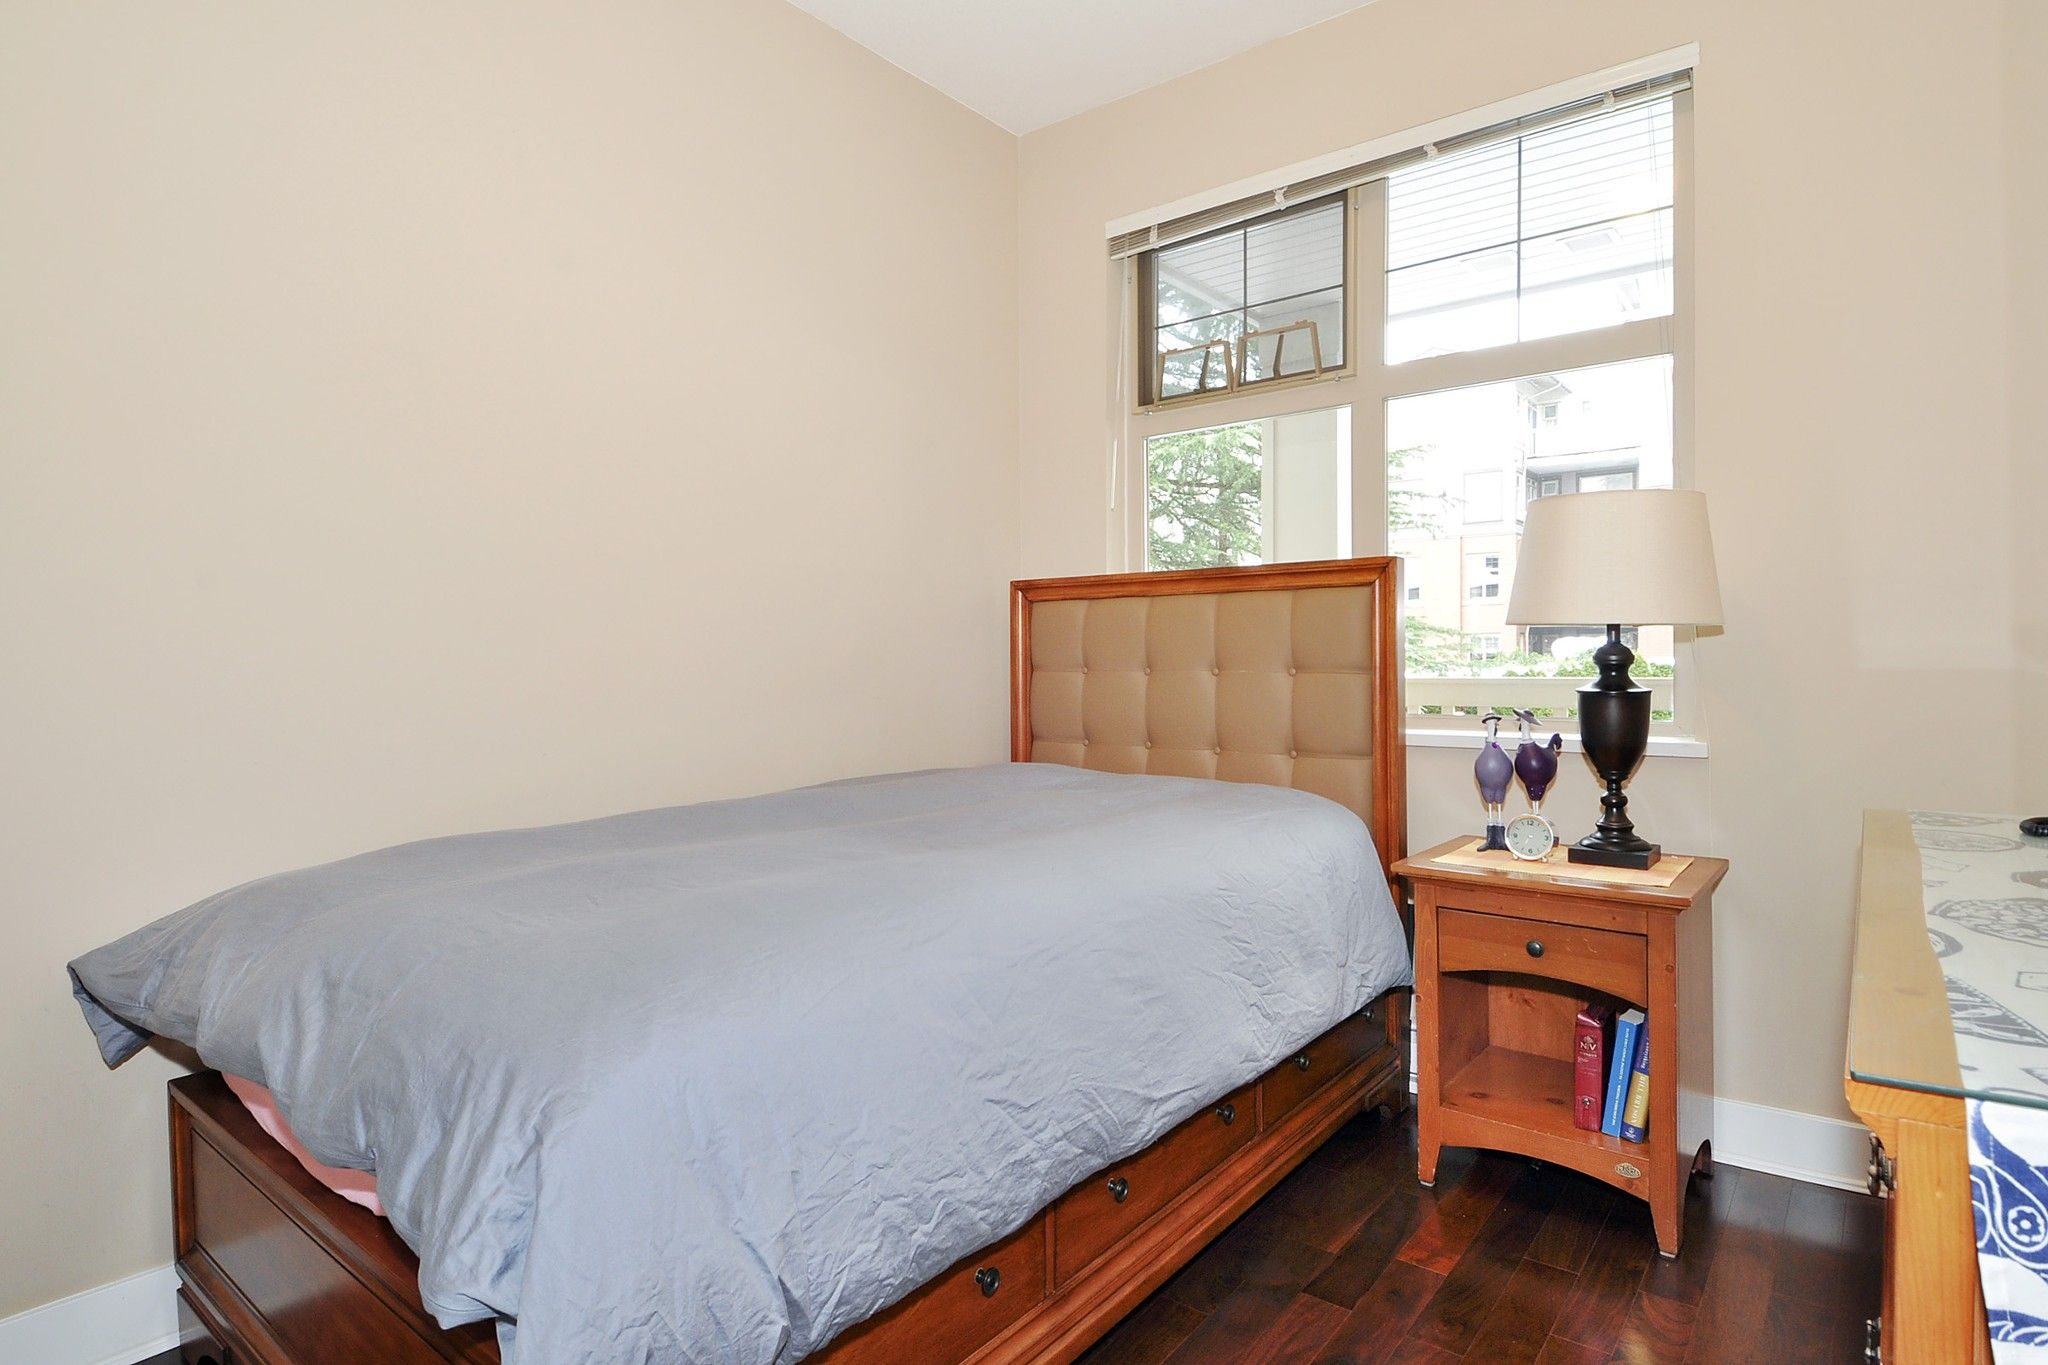 """Photo 10: Photos: 222 2083 W 33RD Avenue in Vancouver: Quilchena Condo for sale in """"DEVONSHIRE HOUSE"""" (Vancouver West)  : MLS®# R2341234"""